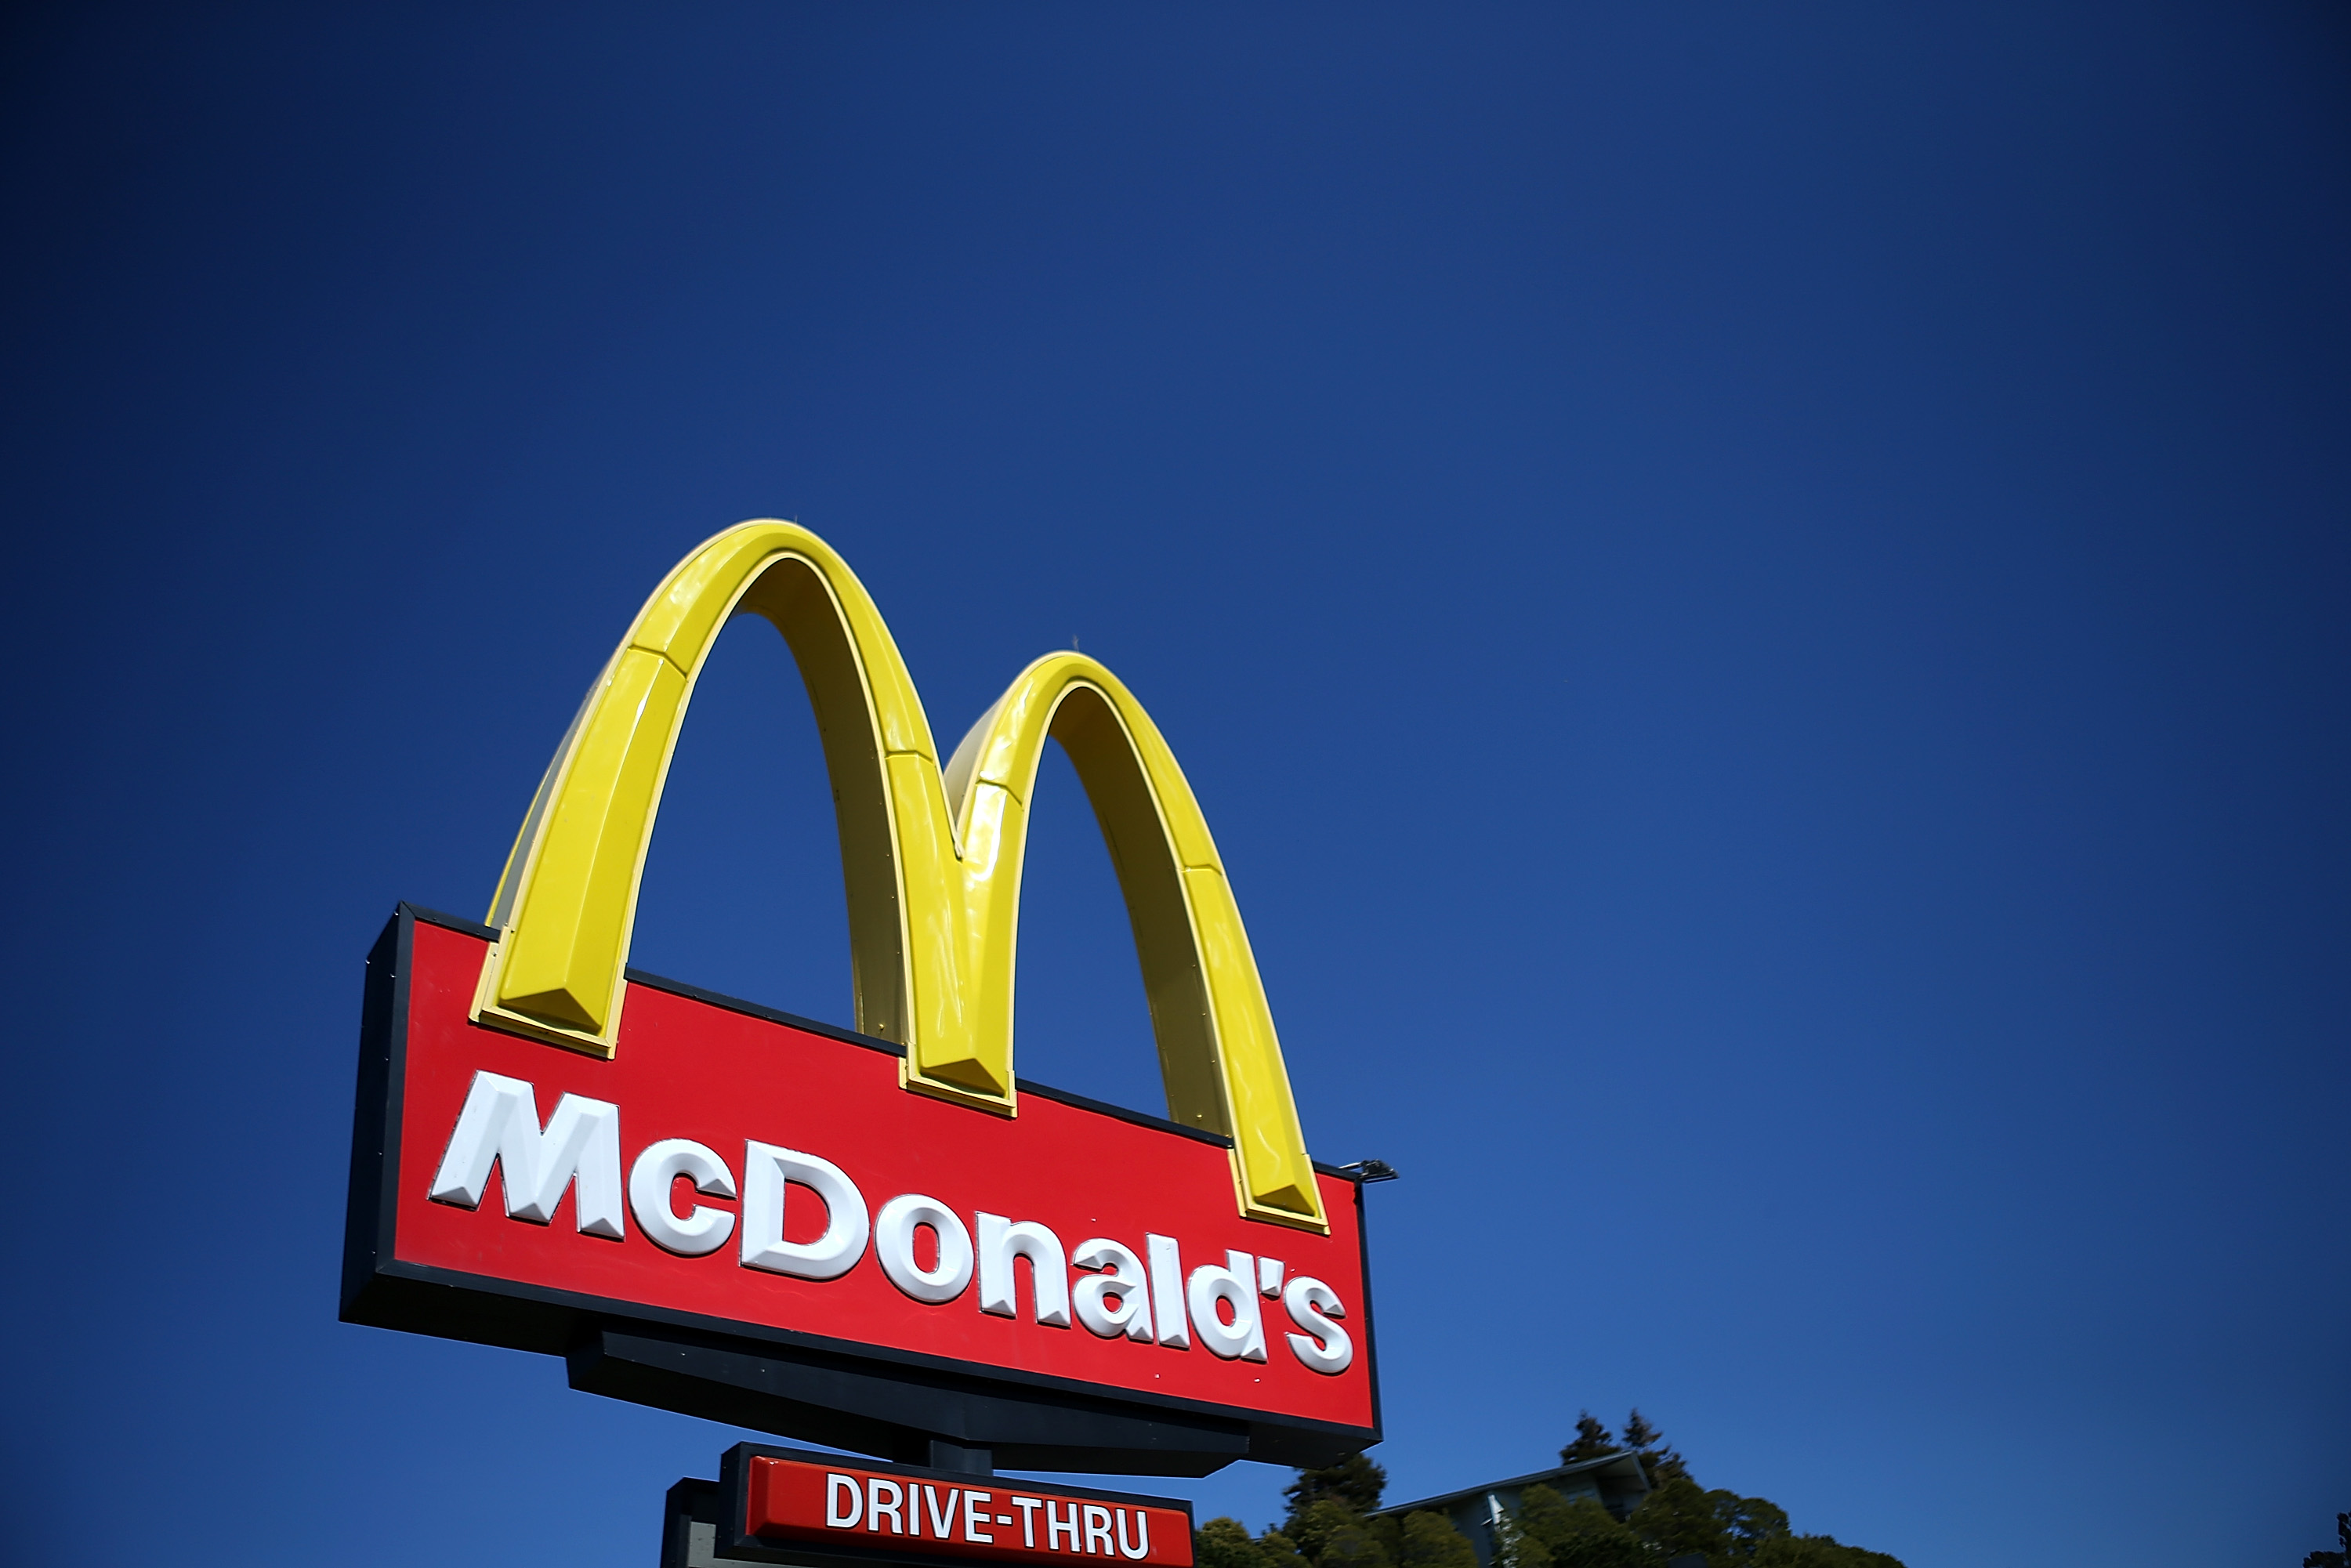 A McDonald's restaurant sign on March 12, 2013 in Mill Valley, California.